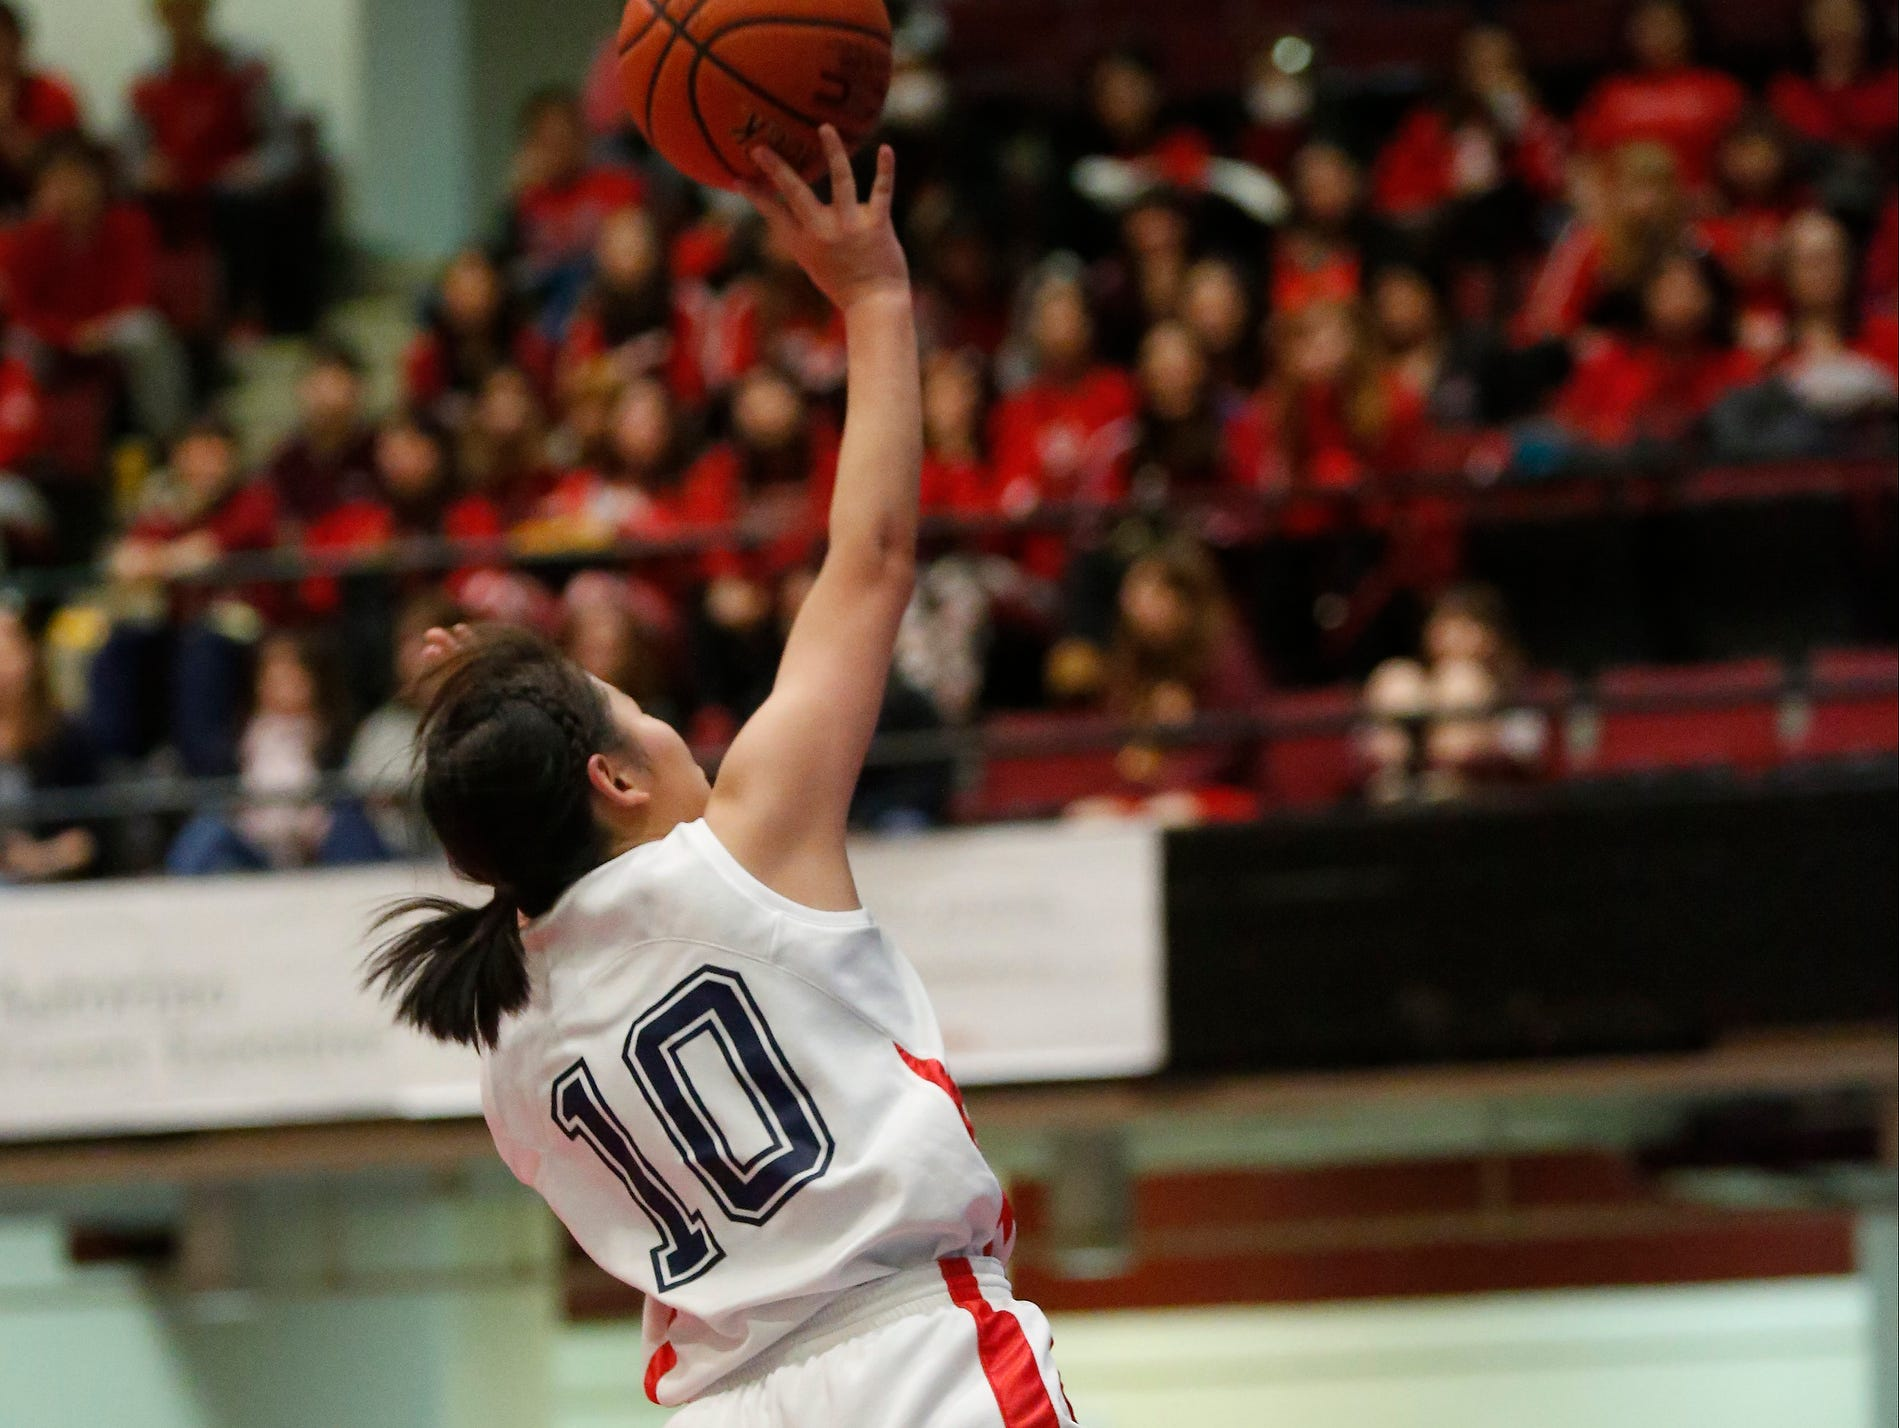 Keio's Ayano Miyauchi (10) puts up a shot after a fast break against North Salem in the class C semi-final basketball game at the Westchester County Center in White Plains on Saturday, February 27, 2016.